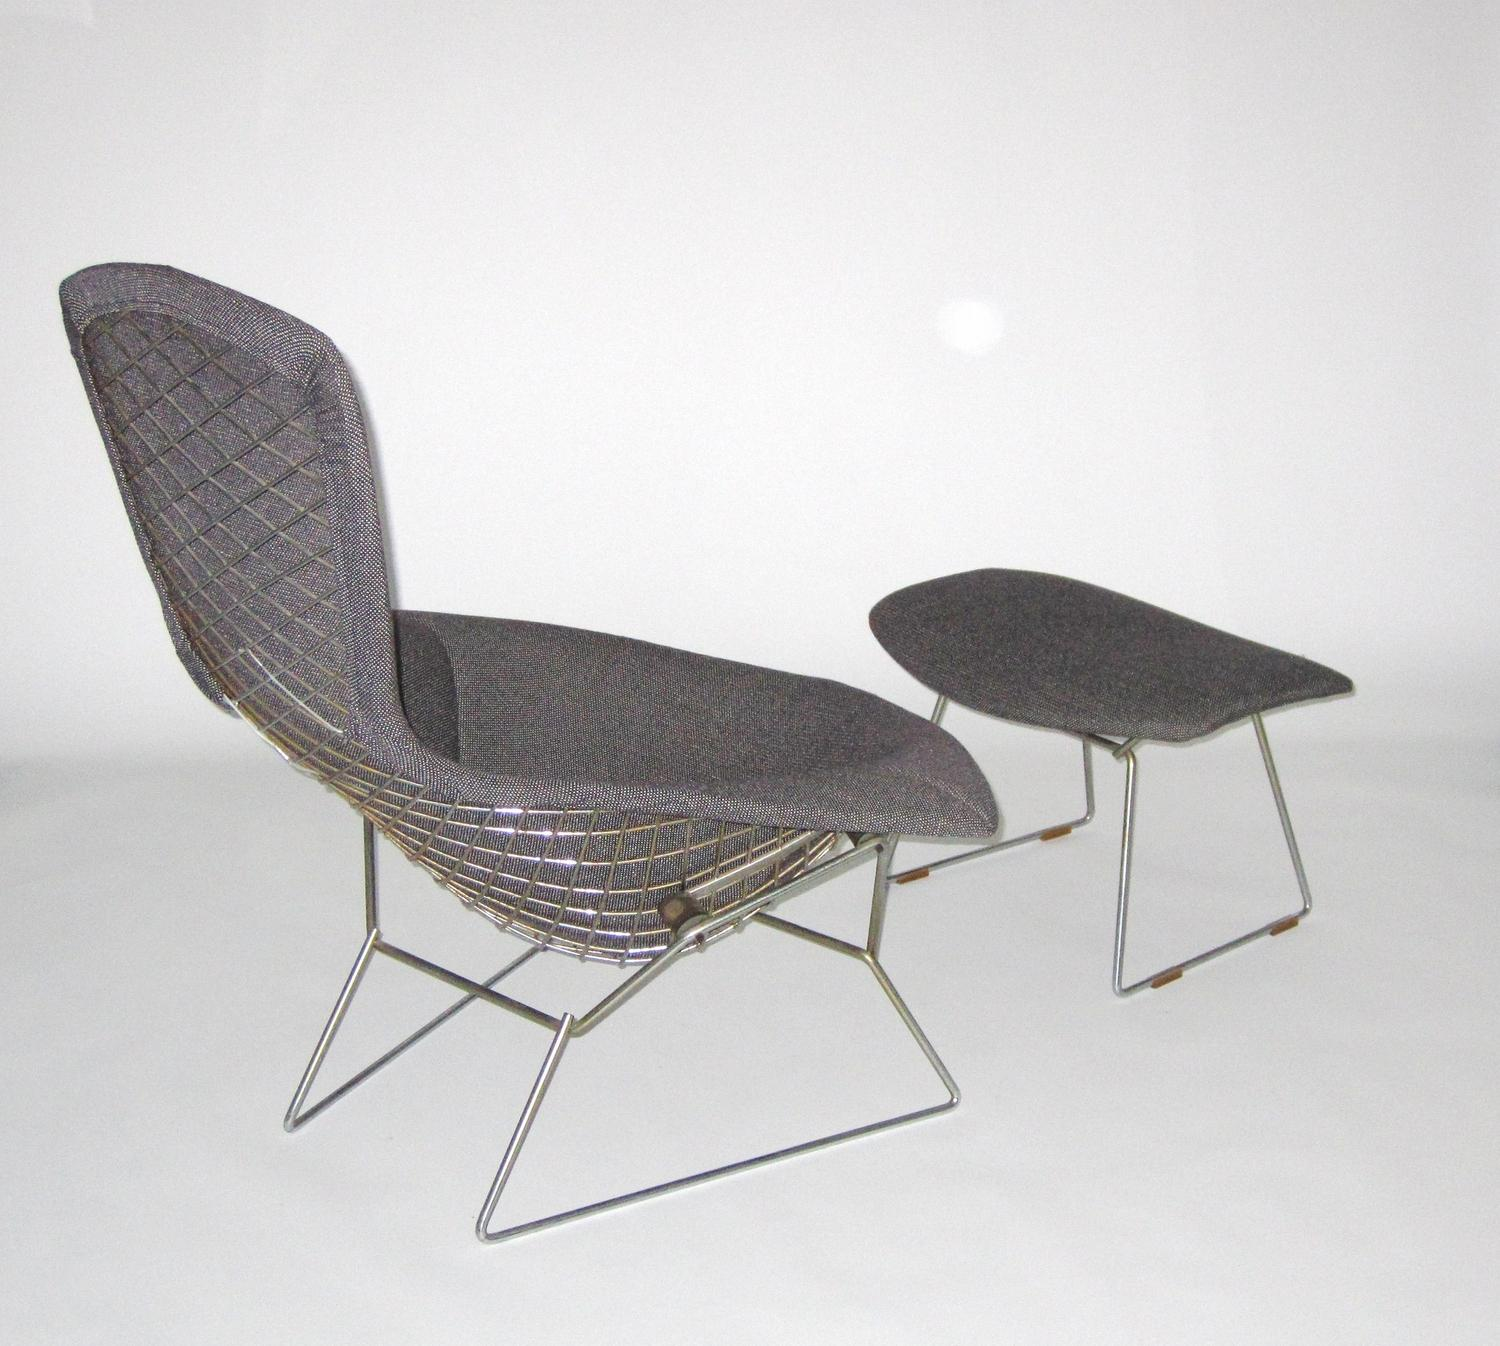 1950 · Image 2  Harry Bertoia for Knoll Bird chair with ottoman c. 1950 & Harry Bertoia for Knoll: Bird chair with ottoman c. 1950